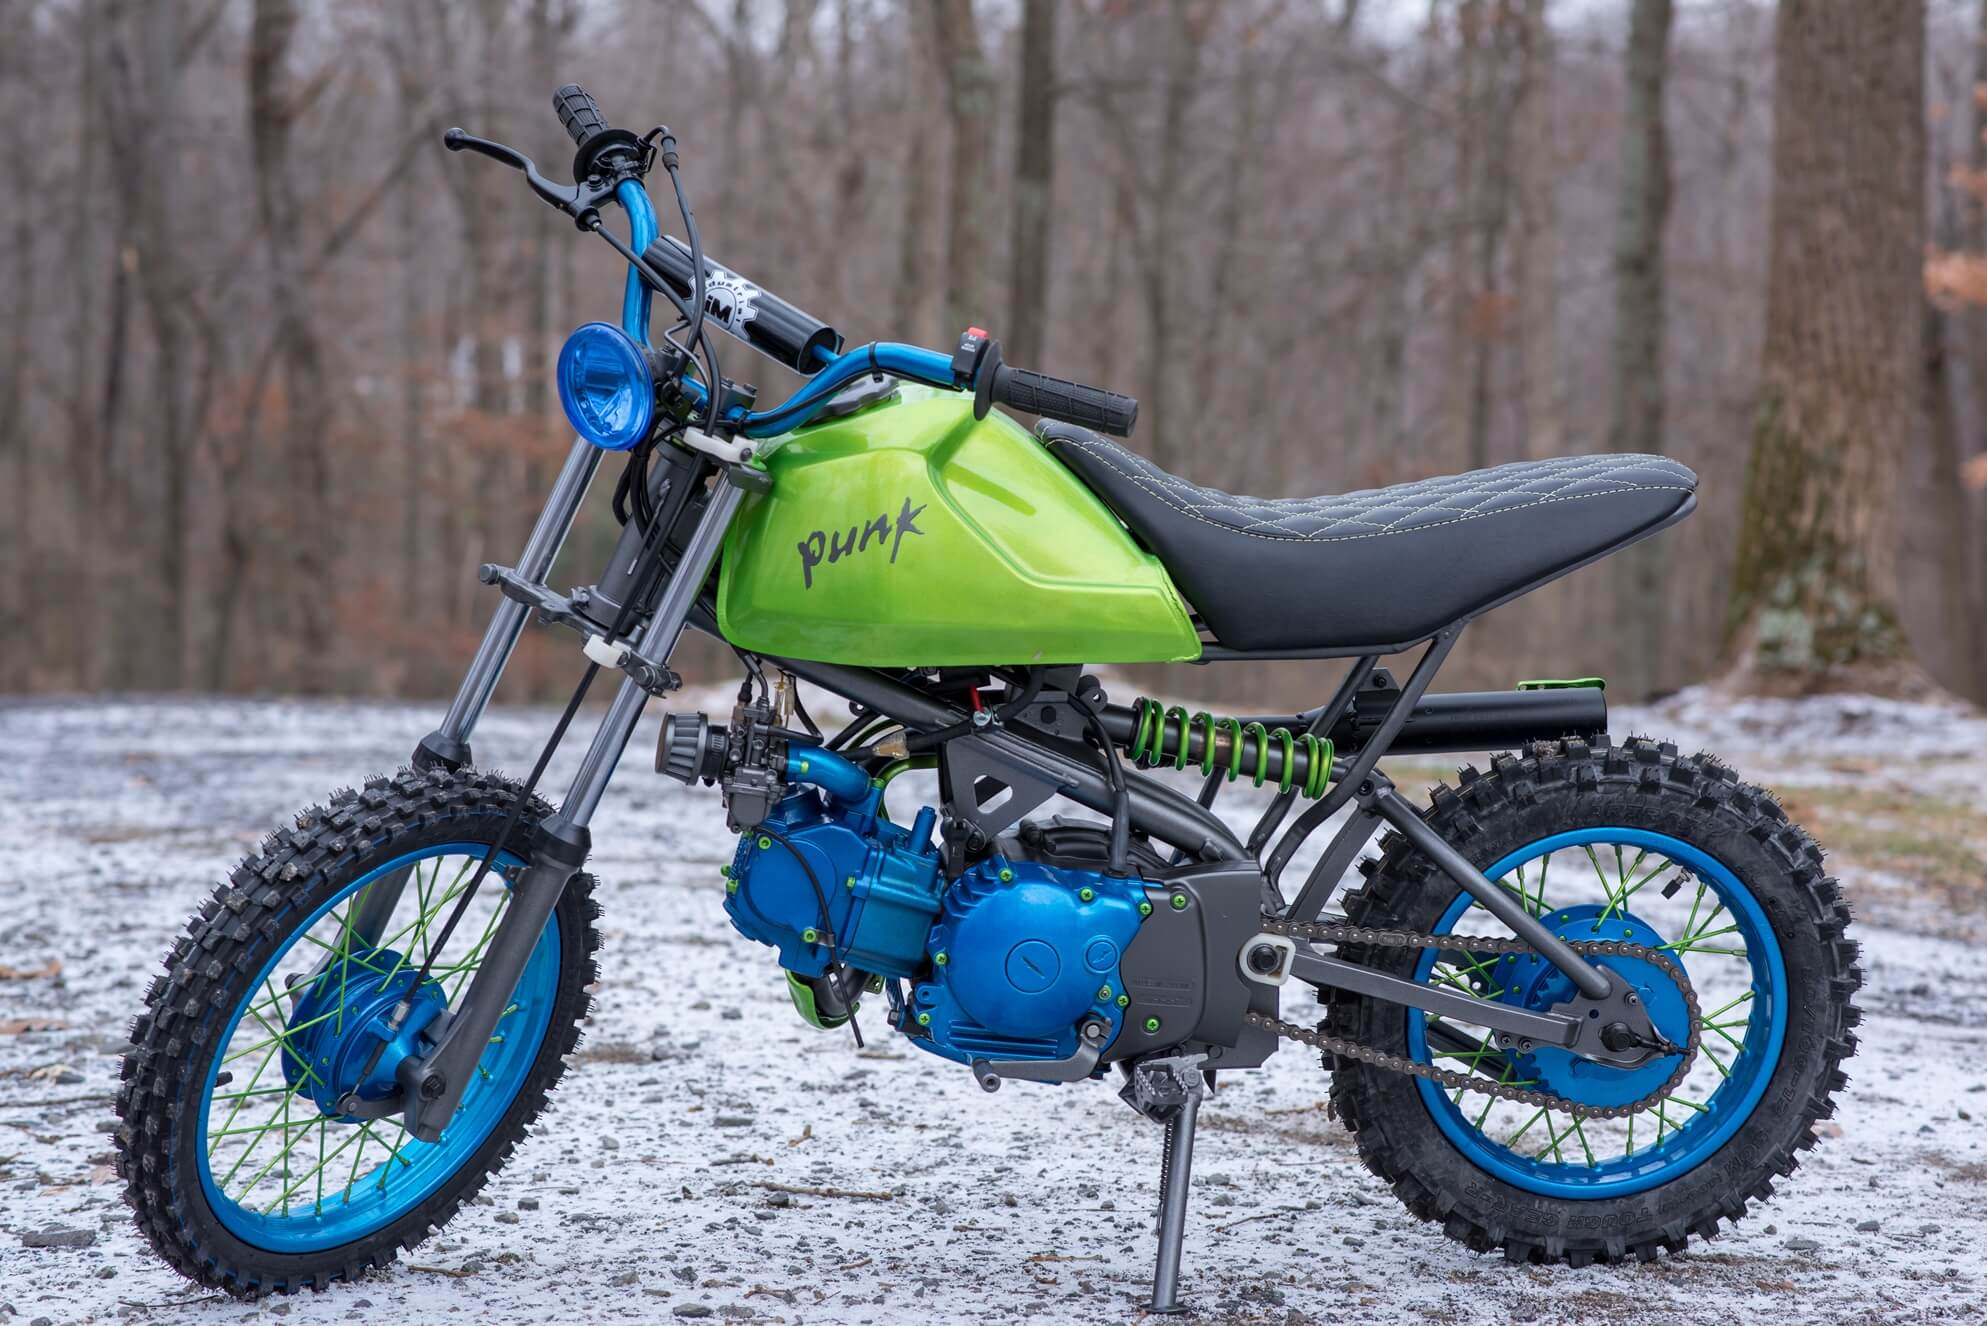 project PUNK – industrial Moto